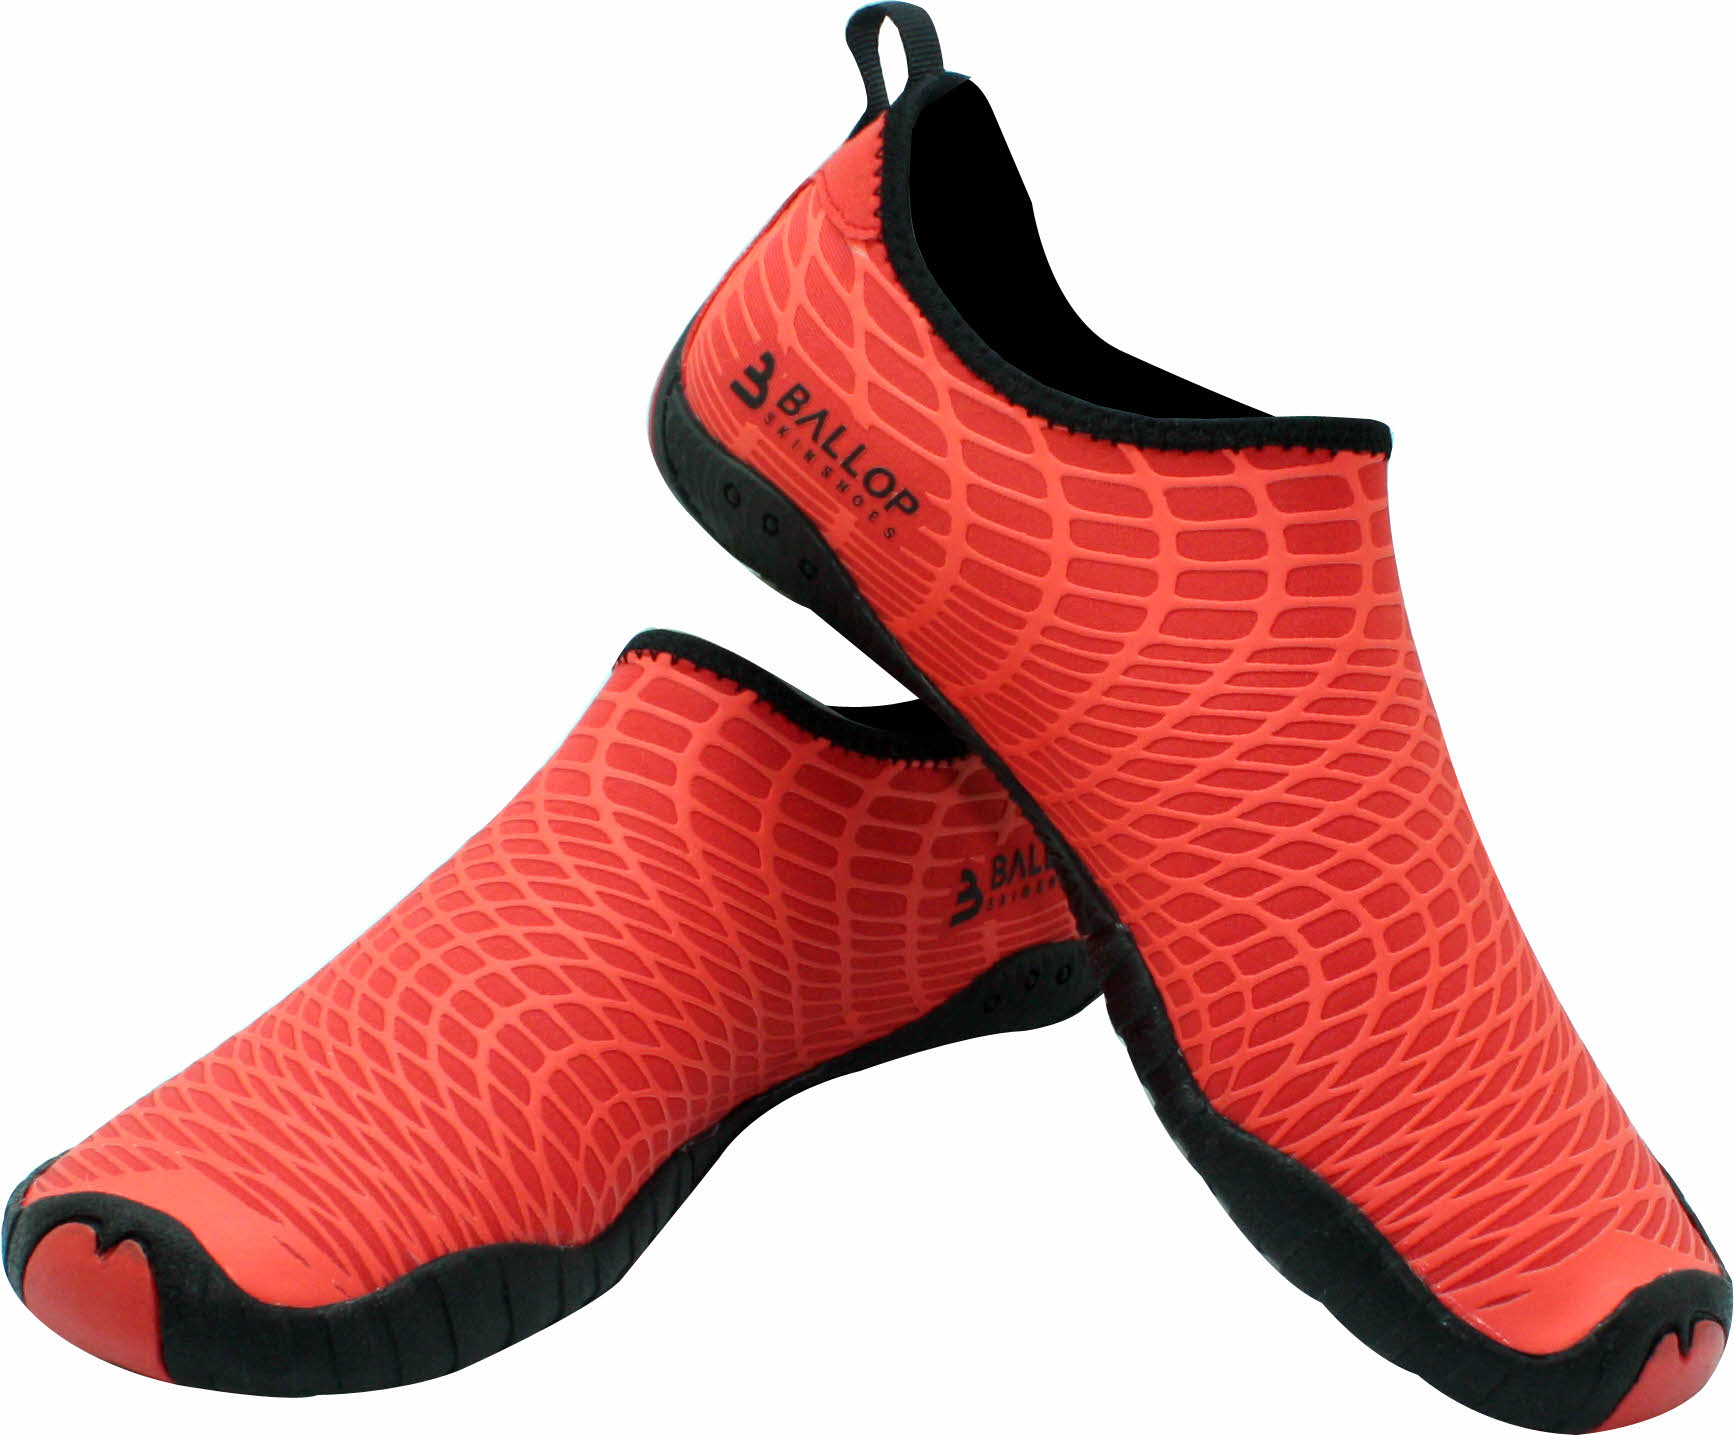 aqua shoes water shoes surfing shoes fitenss shoes gym shoes